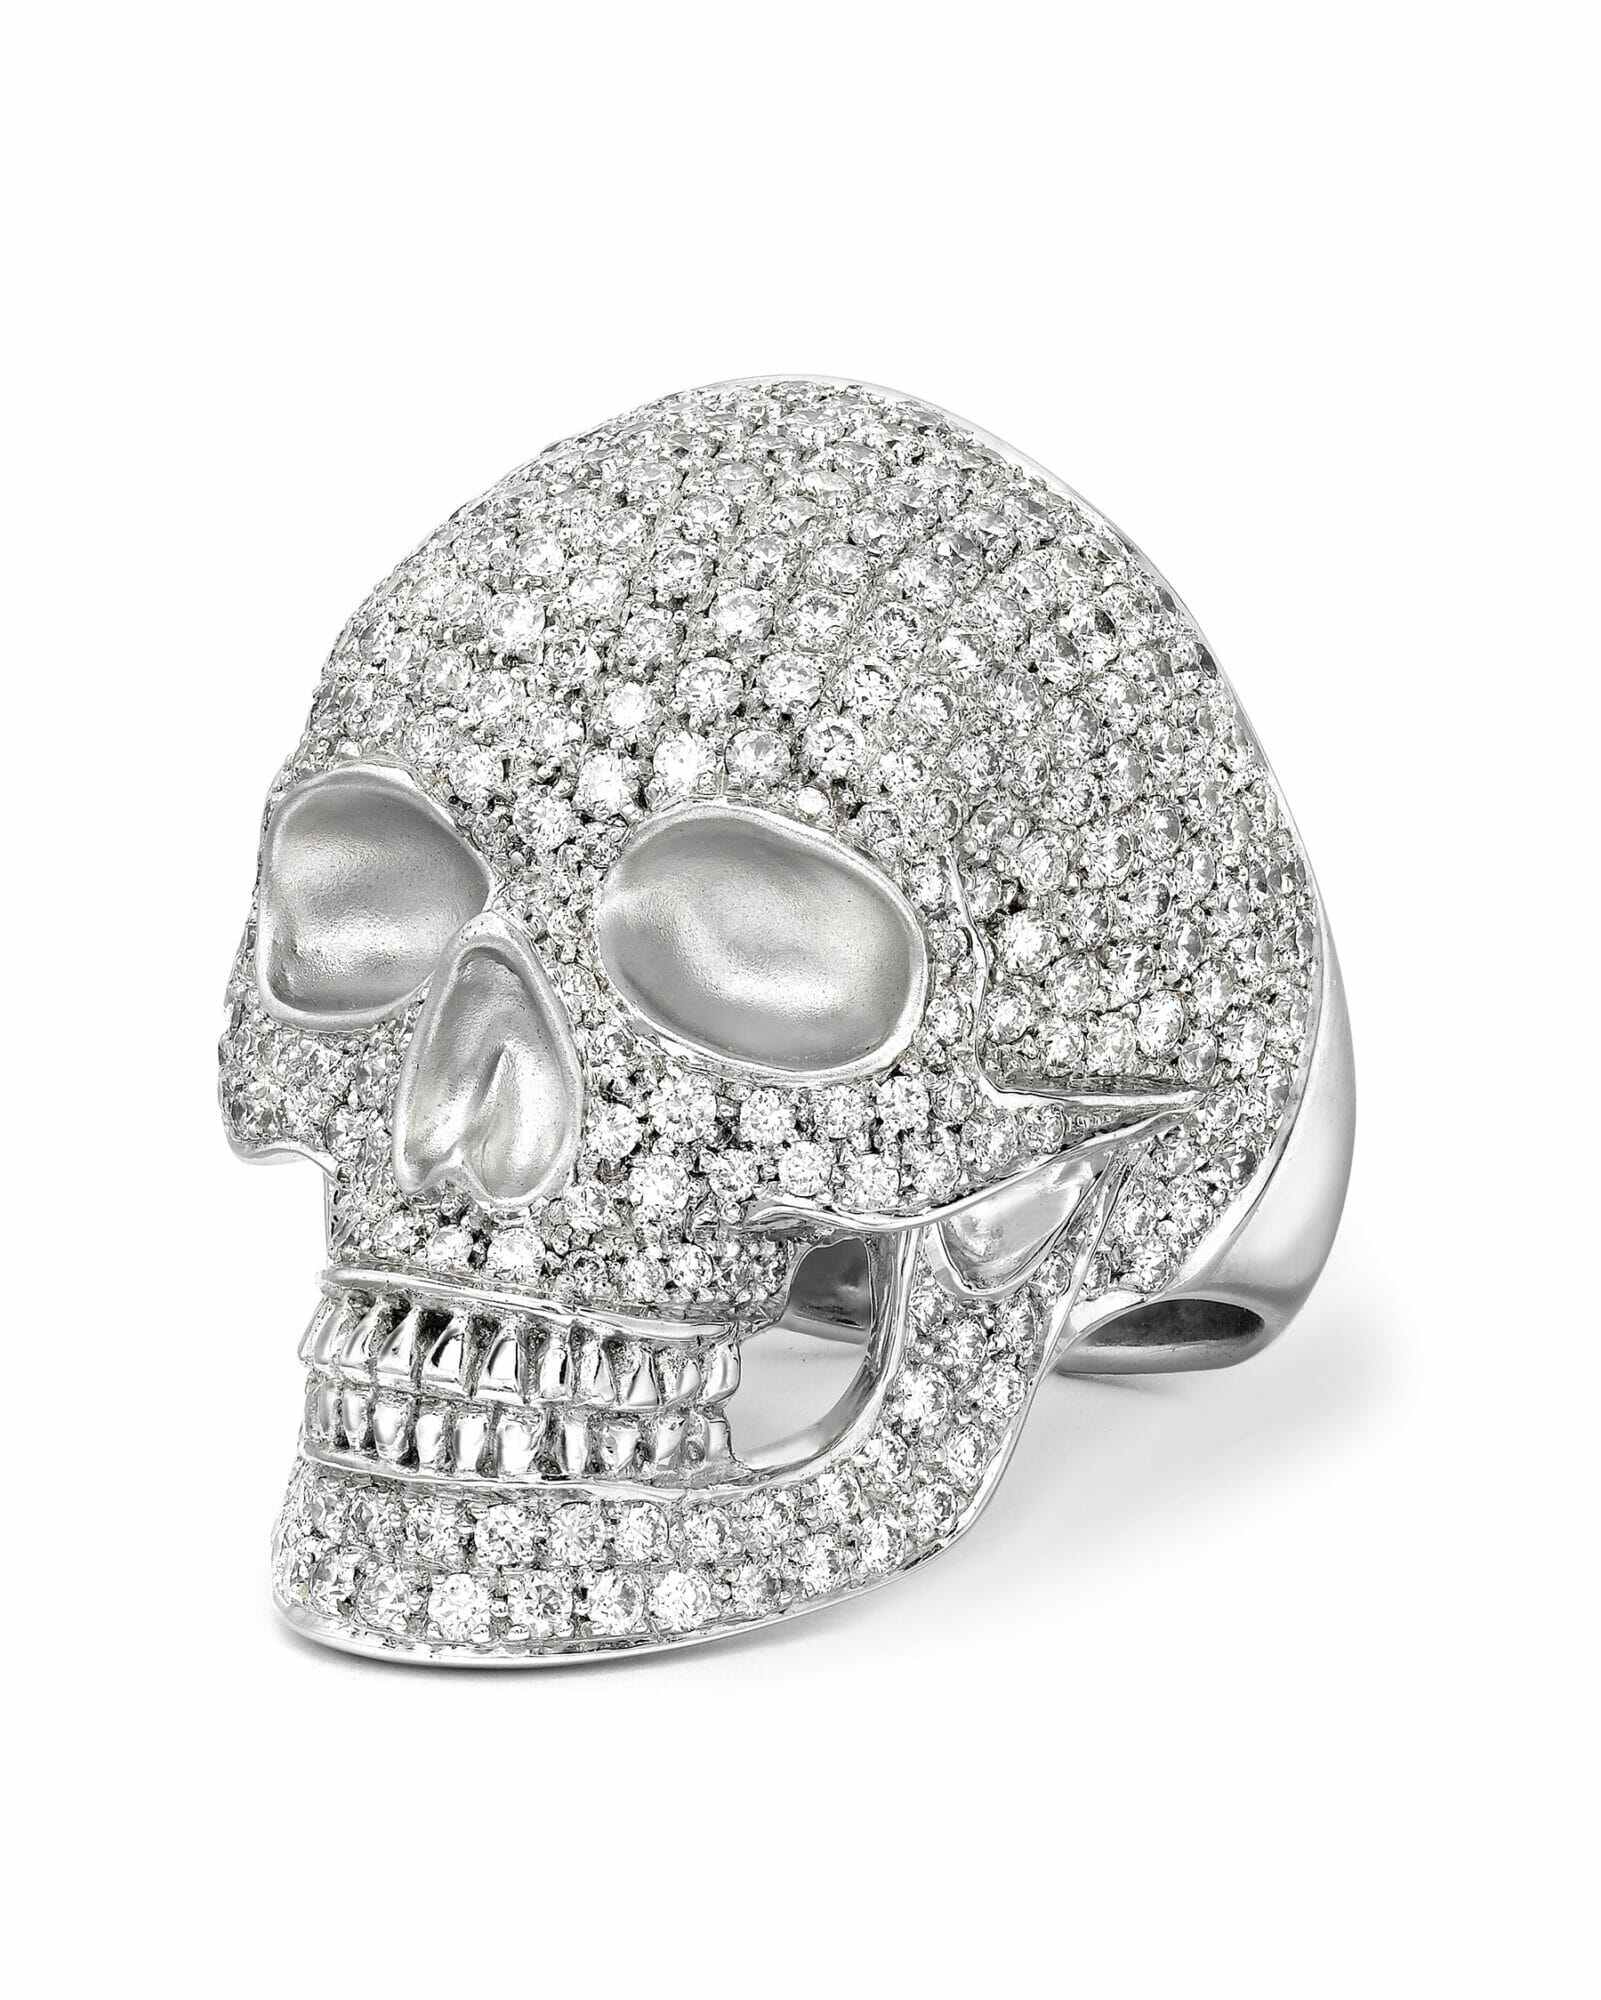 the fennell works british jewelry designers diamonds ring skull